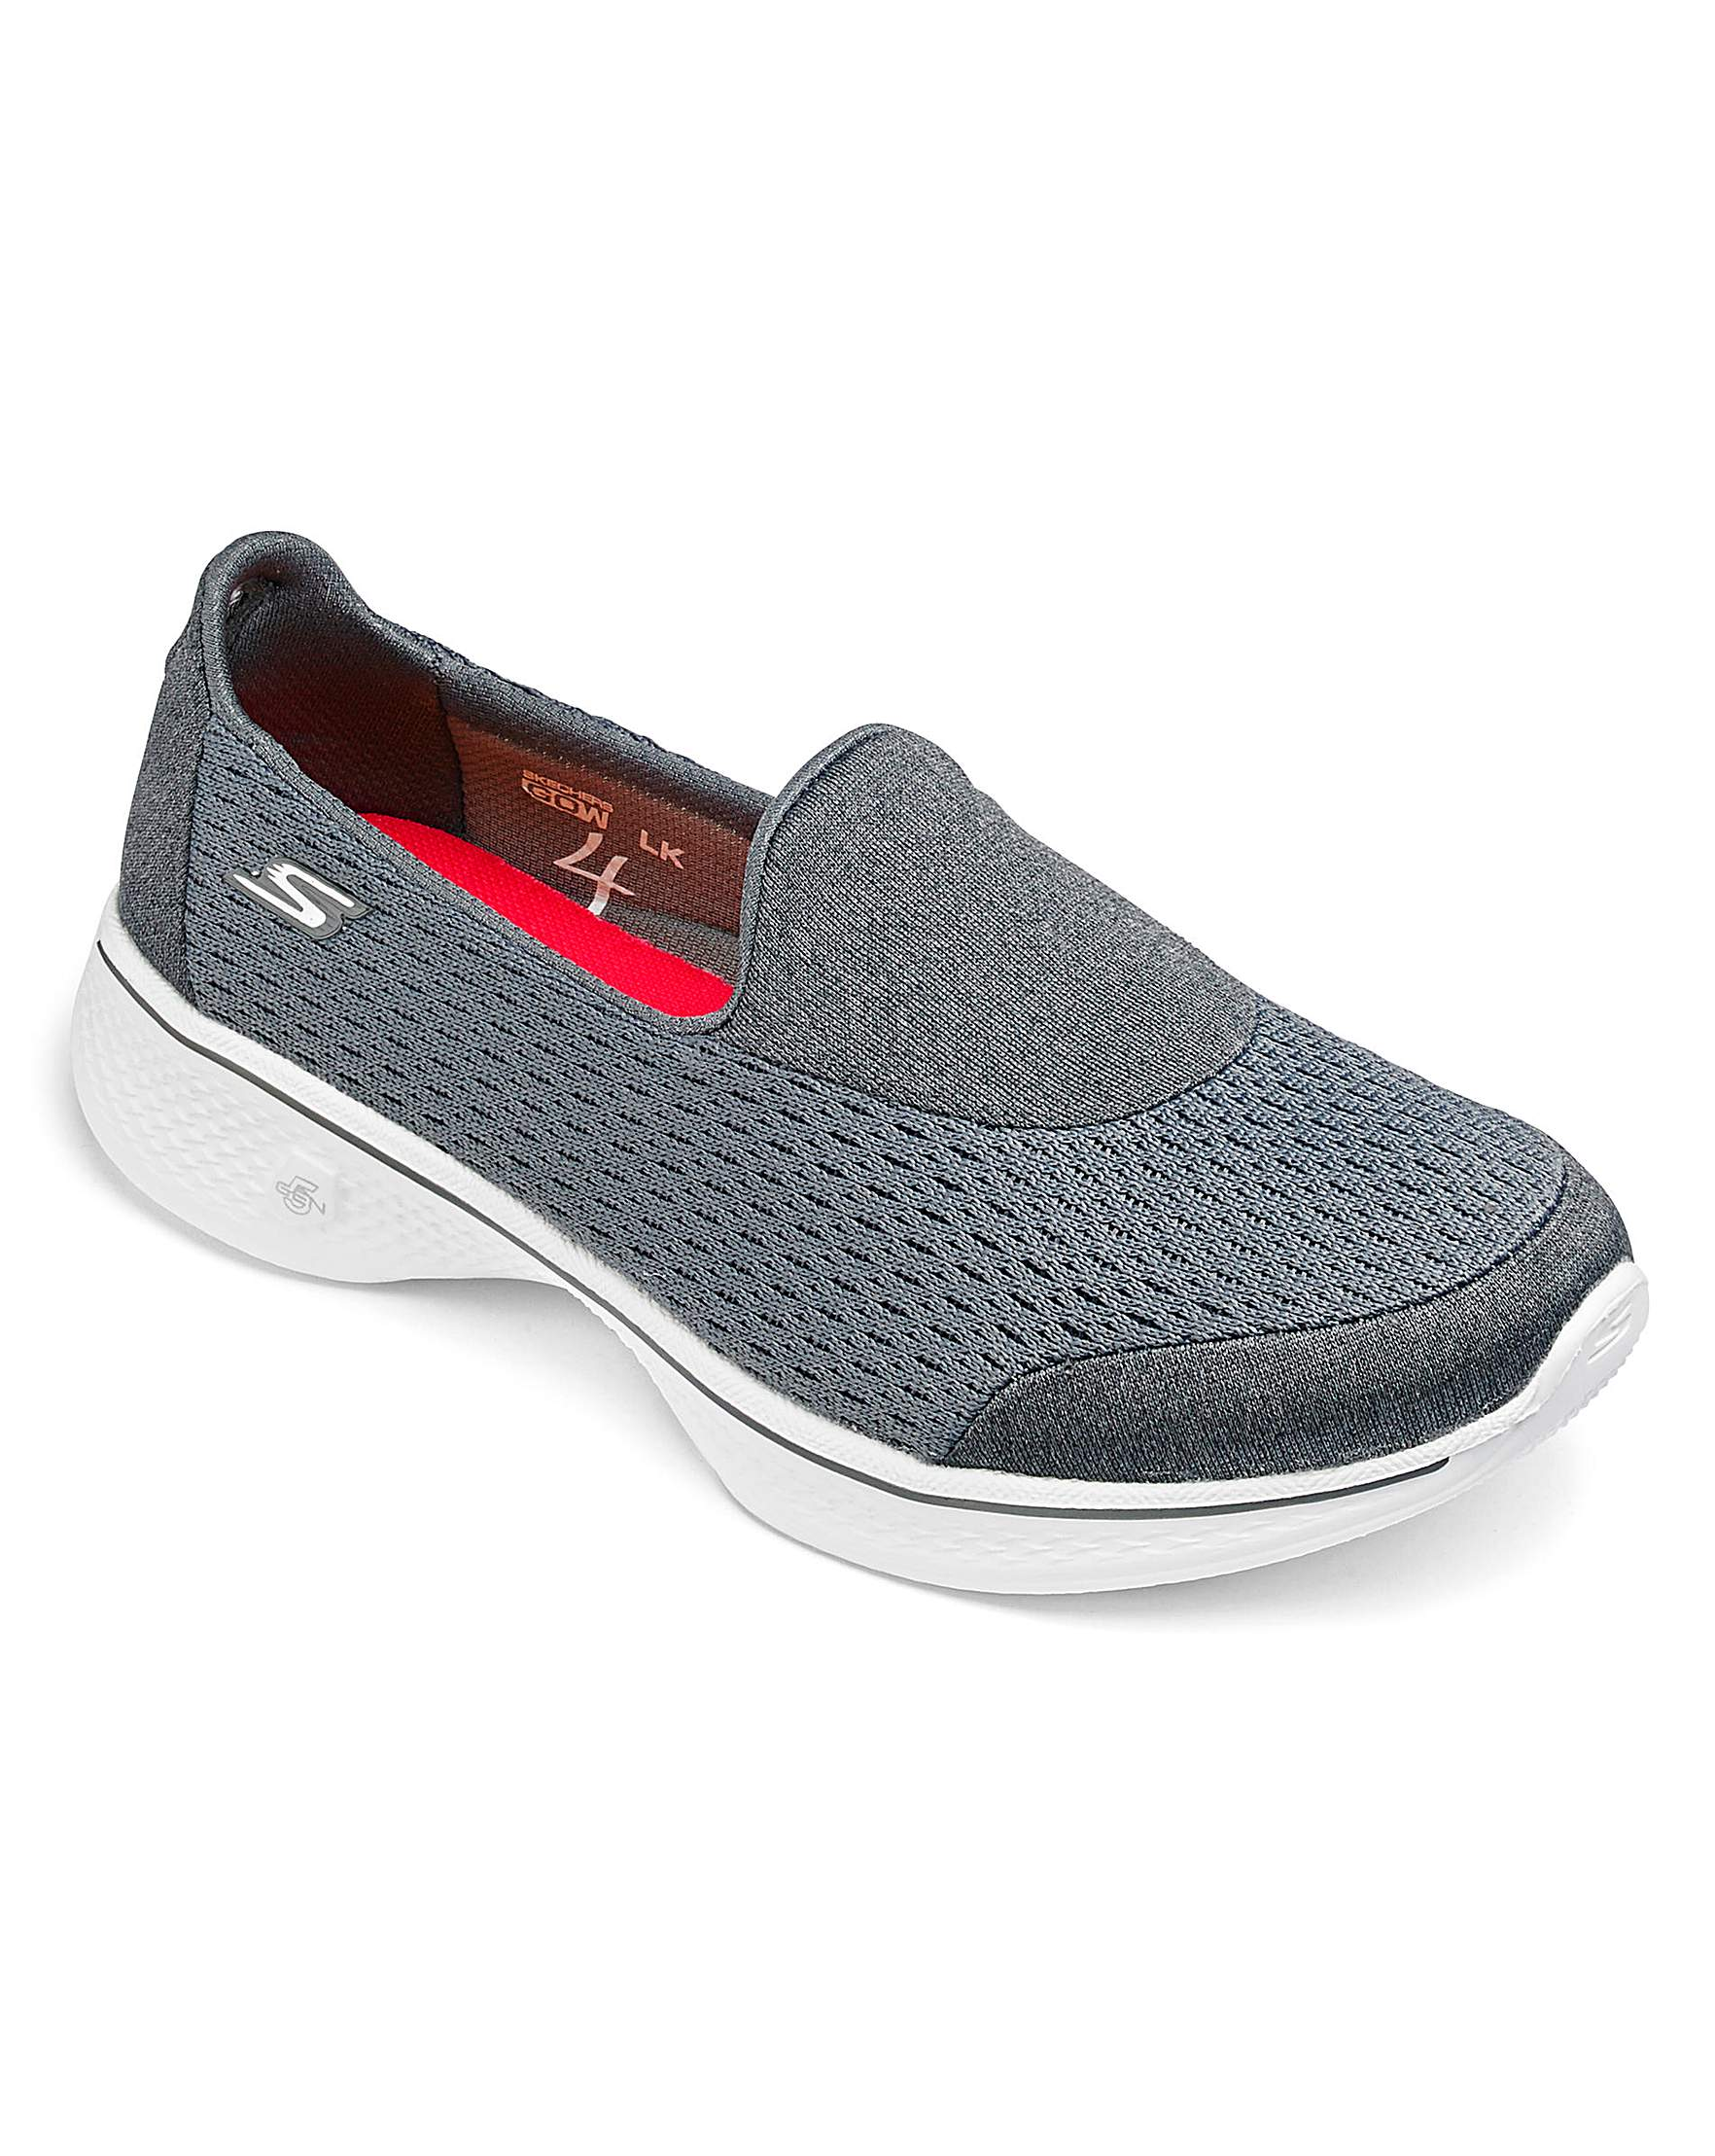 0a49a7964cd8 Skechers Go Walk 4 Trainers Wide Fit